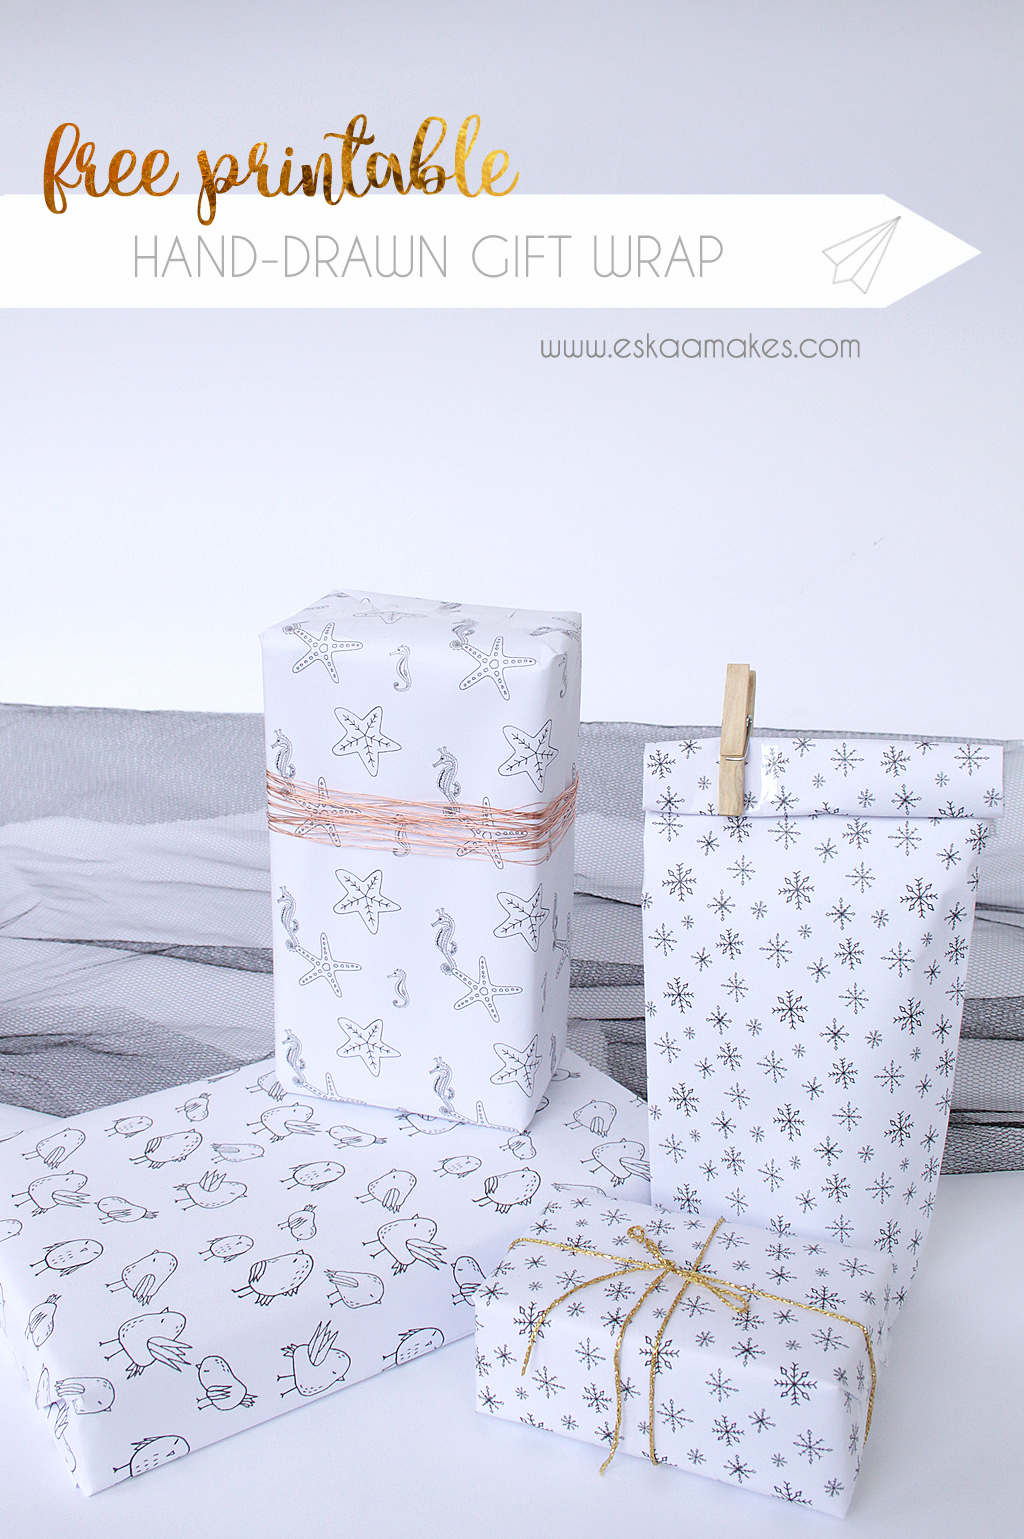 photograph relating to Free Printable Wrapping Paper referred to as Cost-free Printables: hand-drawn reward wrap » [es.kaa.] results in